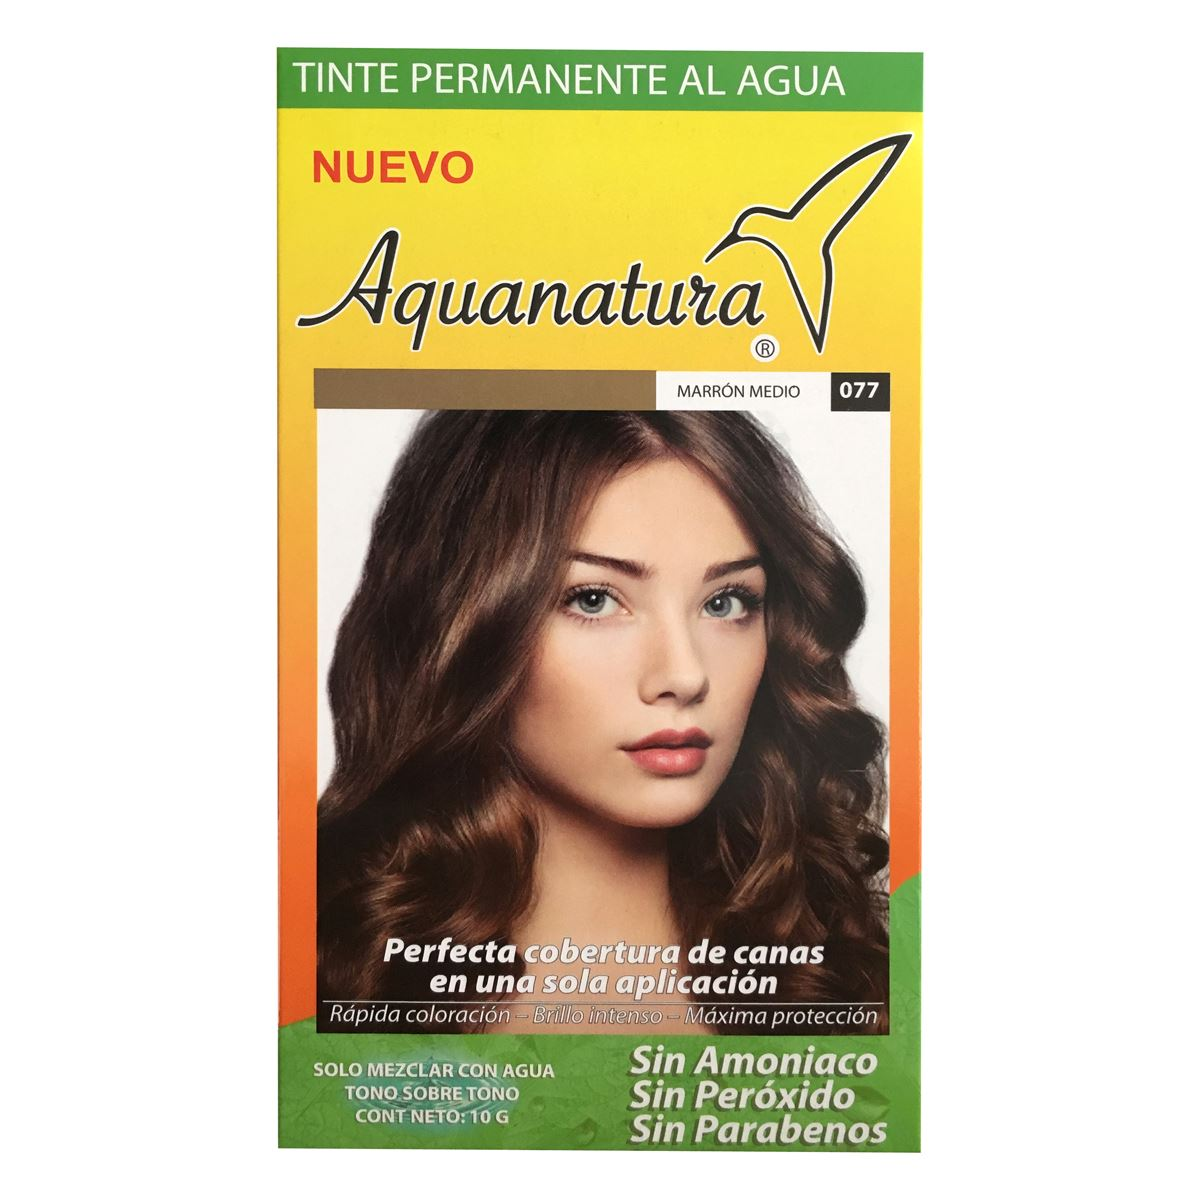 Tinte permanente al agua aquanatura marrón medio  - Sanborns